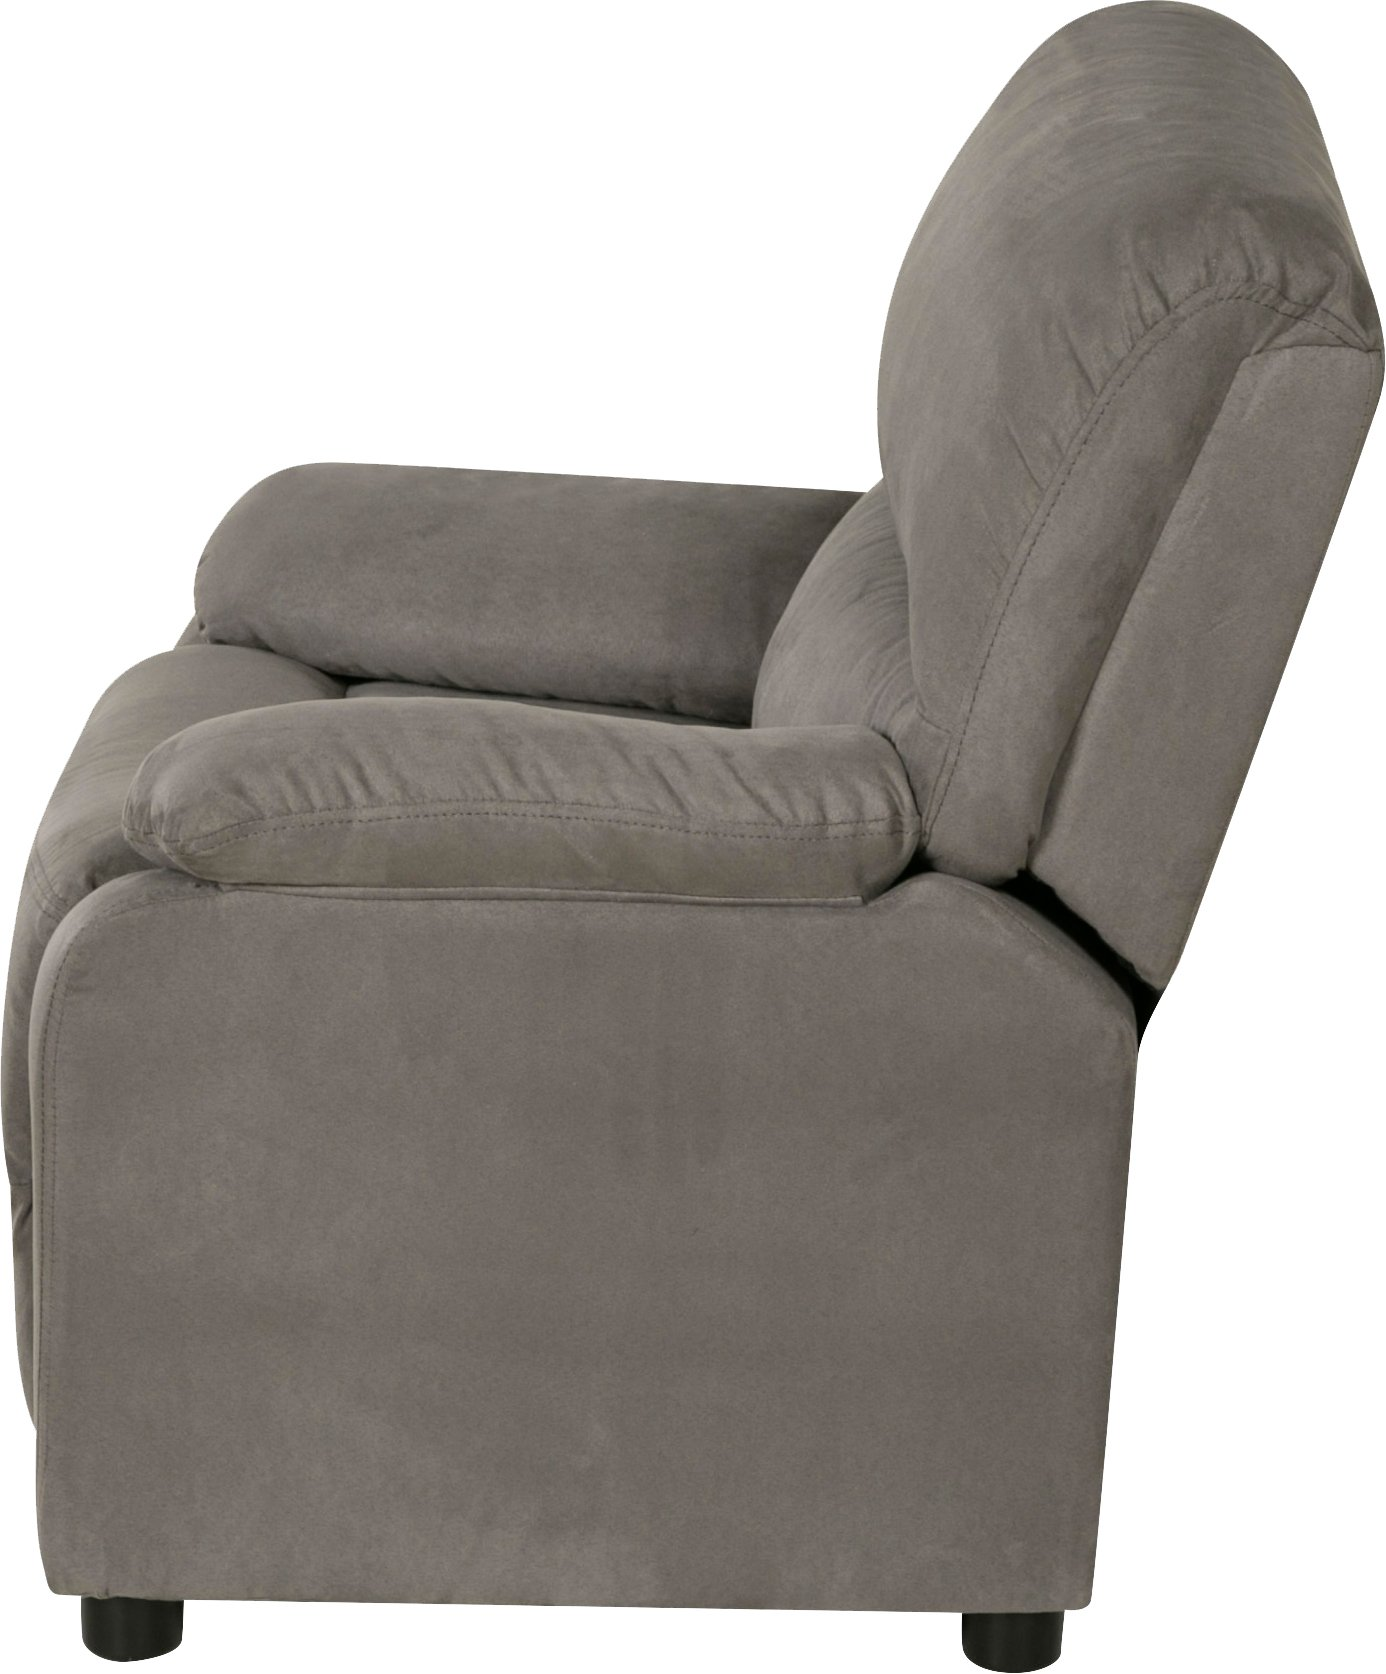 Relaxzen 60-7101KU04 Youth Recliner with Storage Arms and Dual USB, Gray